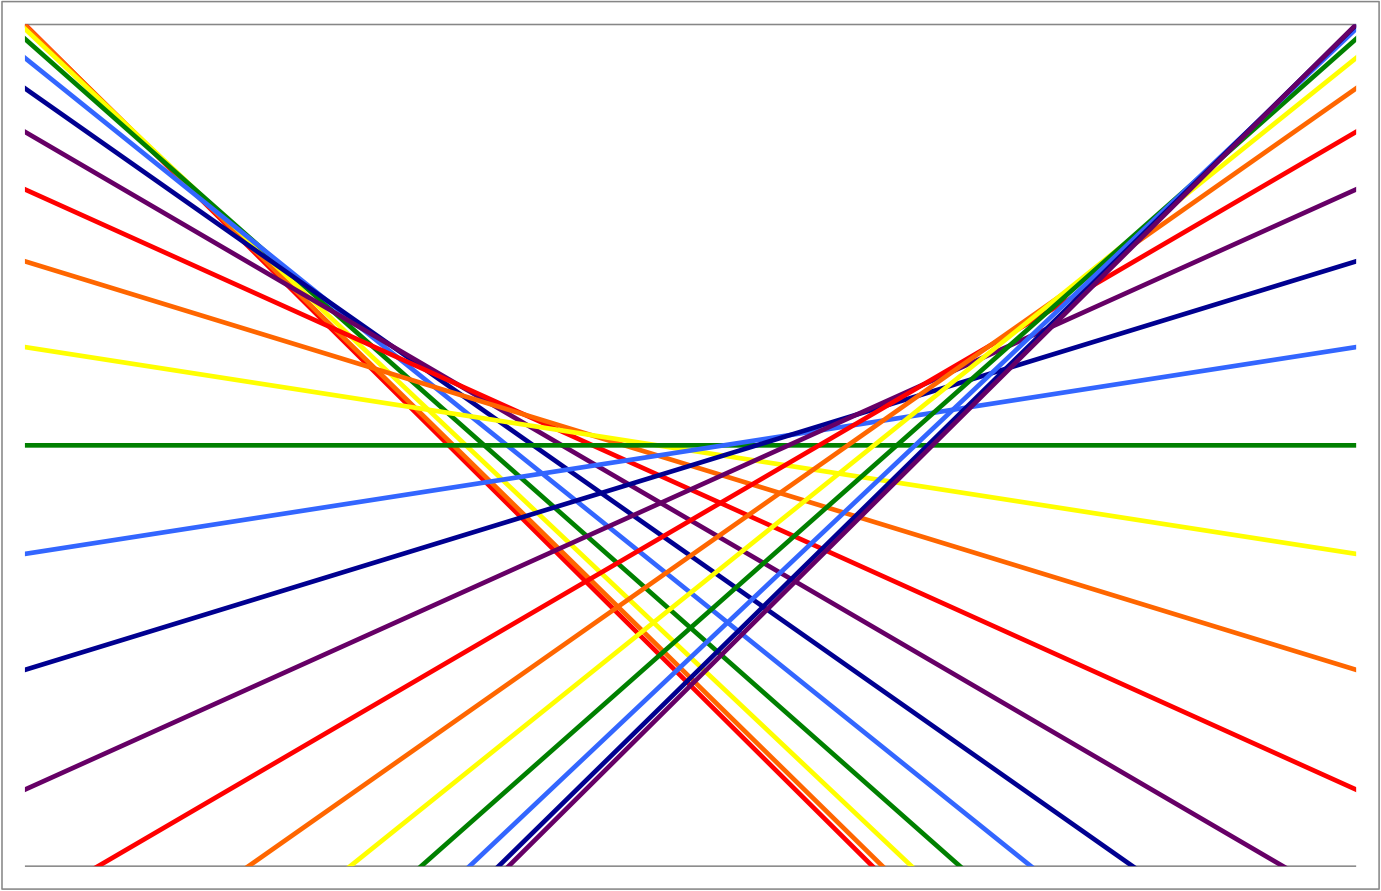 Math Year Tangents Of A Sine Wave Trough